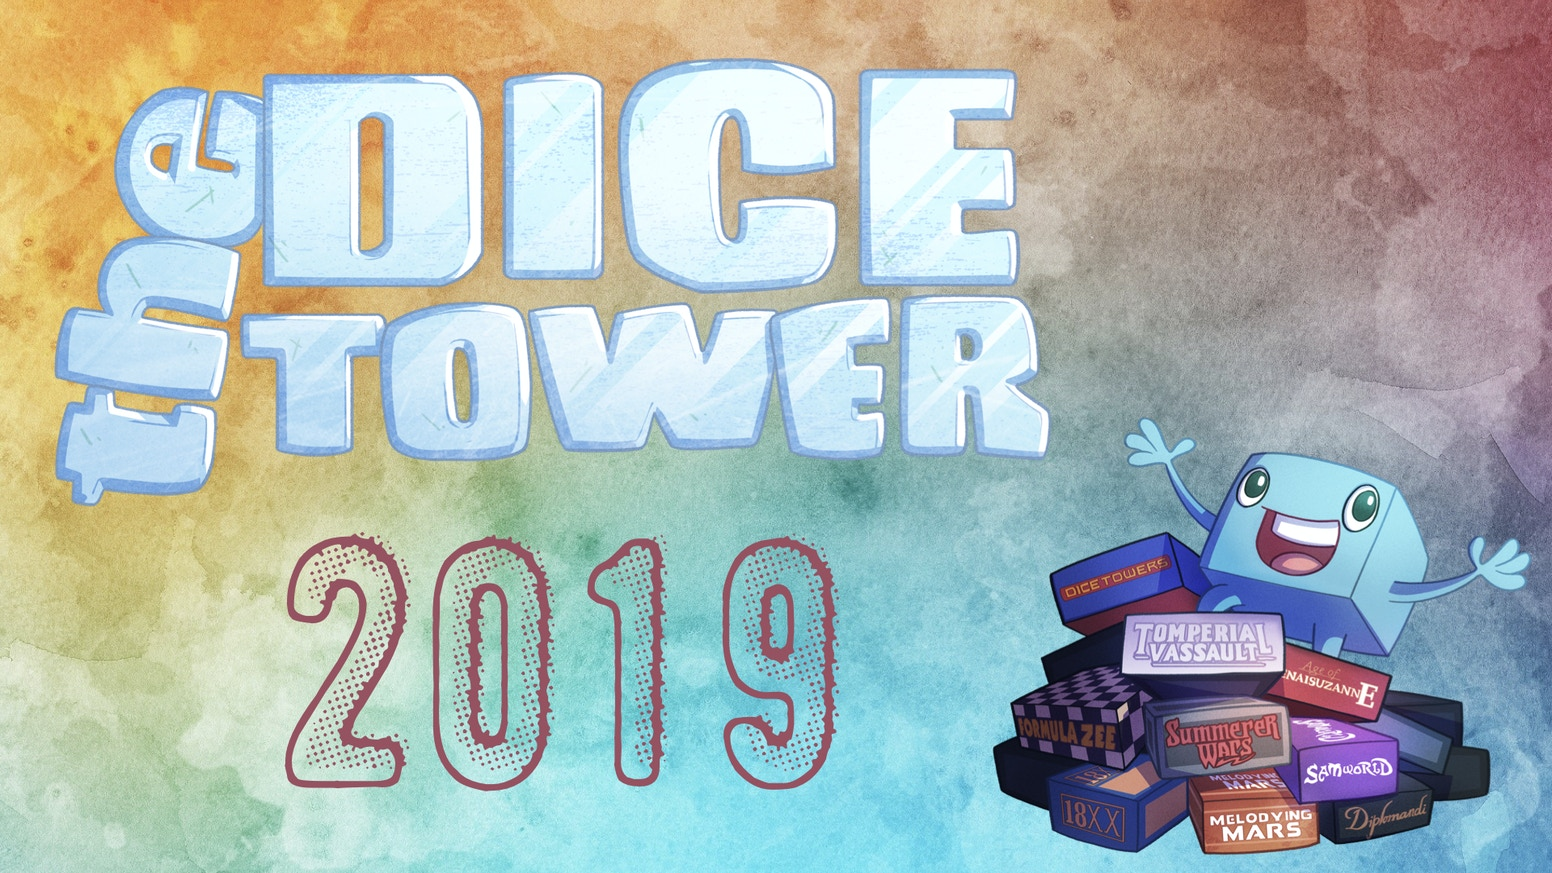 The Dice Tower enters its 15th season! We are raising funds to continue our coverage of board games and the people who play them.